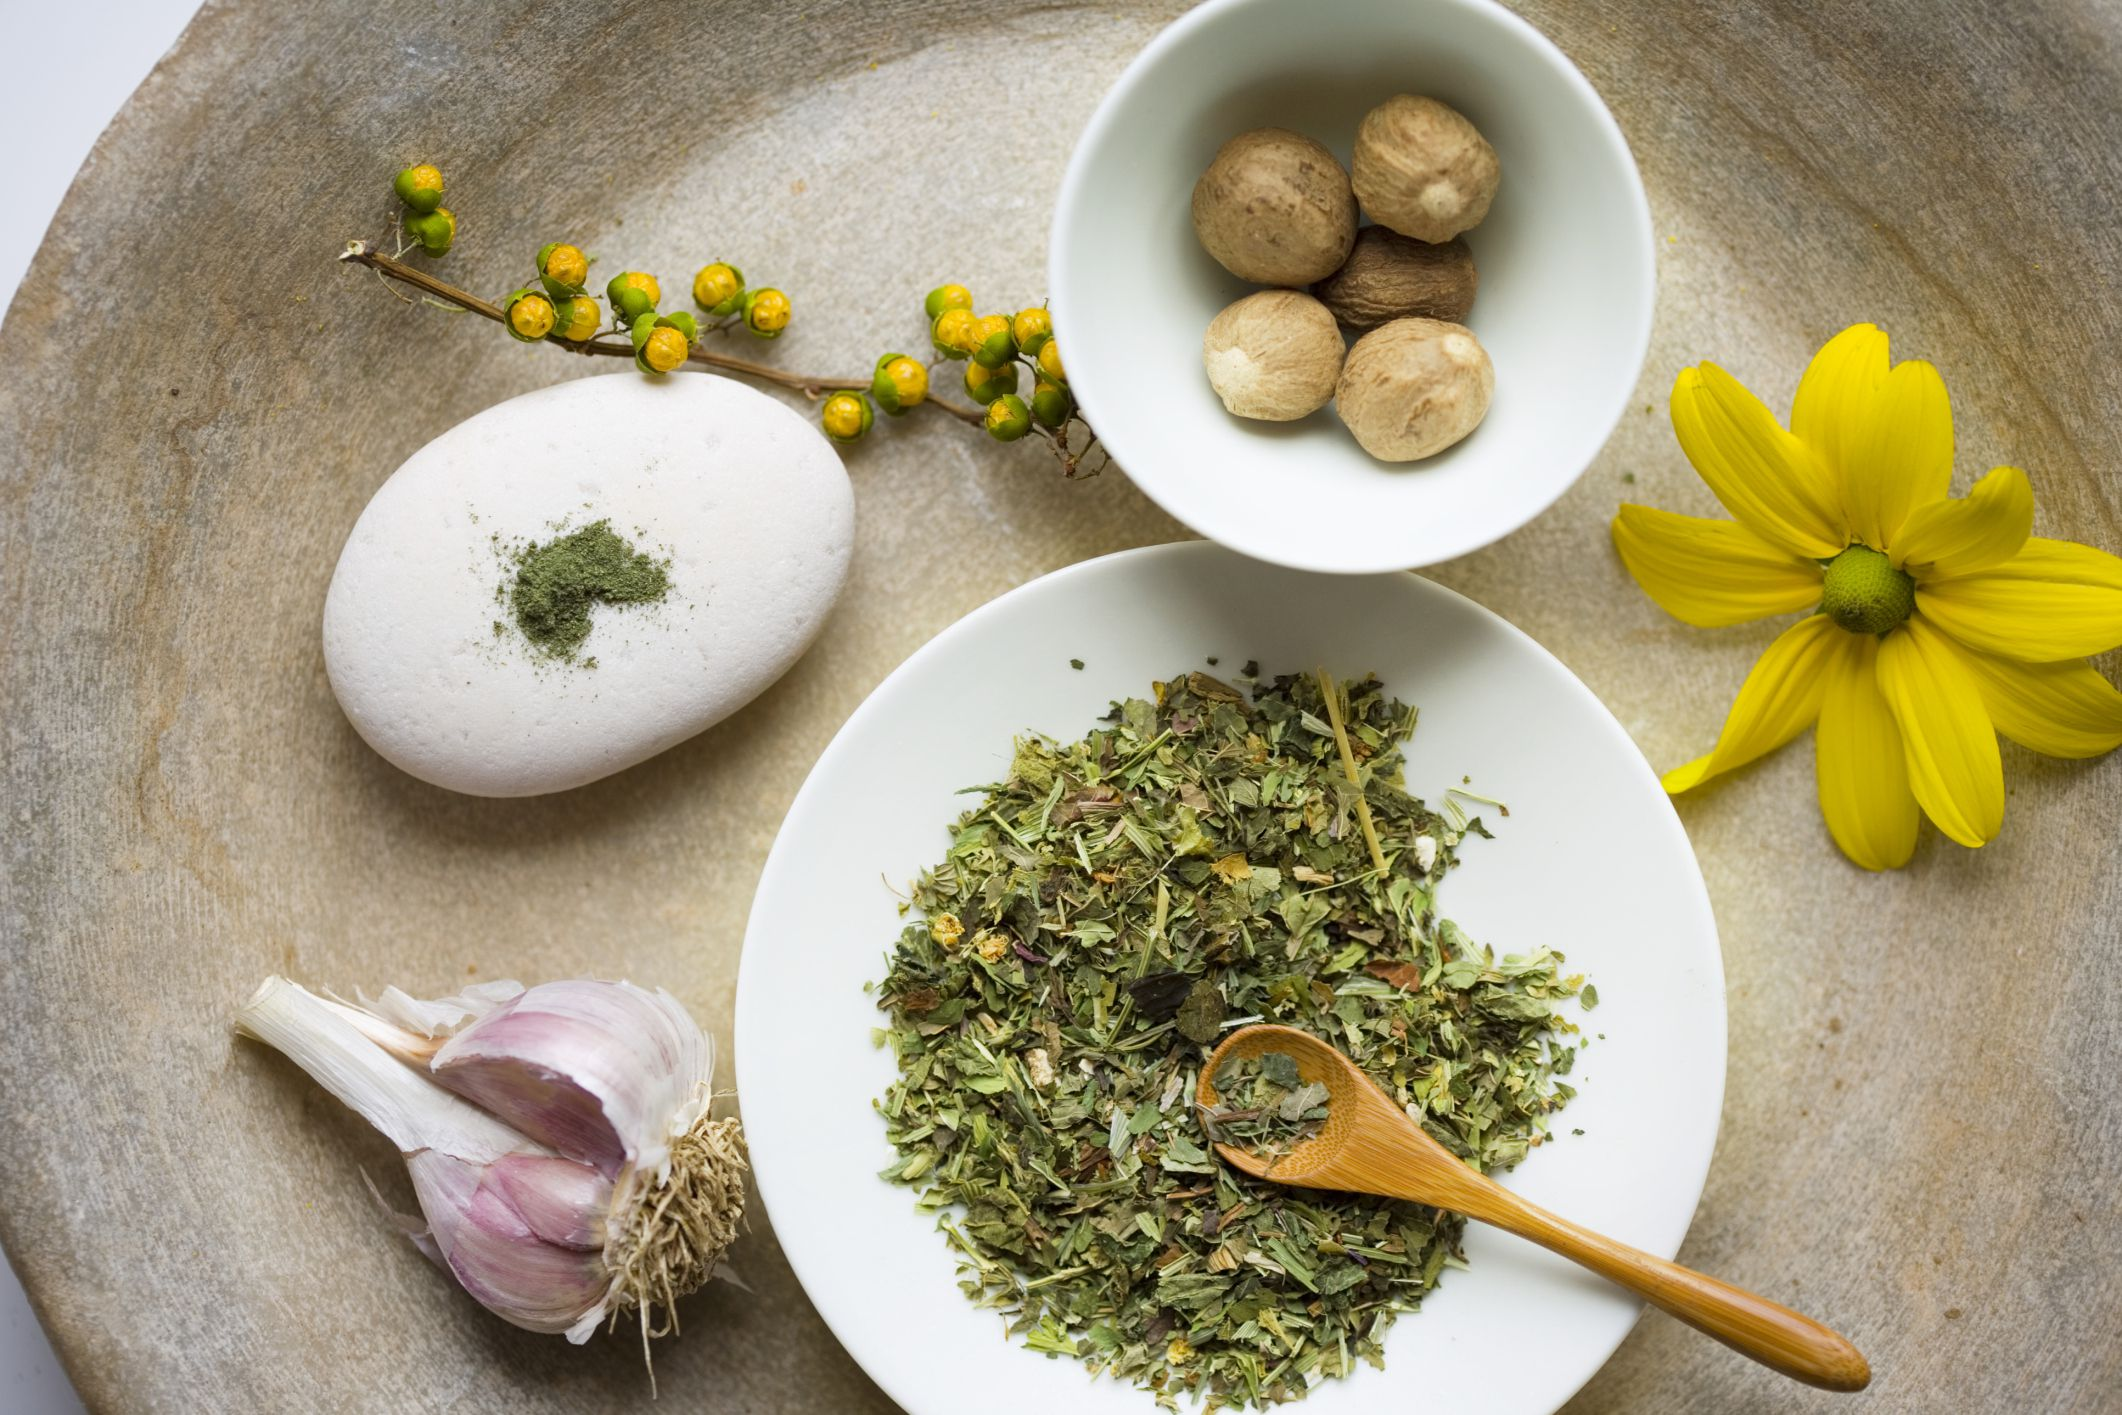 natural remedies naturopathy medicine herbal herbs naturopath allergy loss weight allergies health cures canberra knees nutritionist bees expect info office